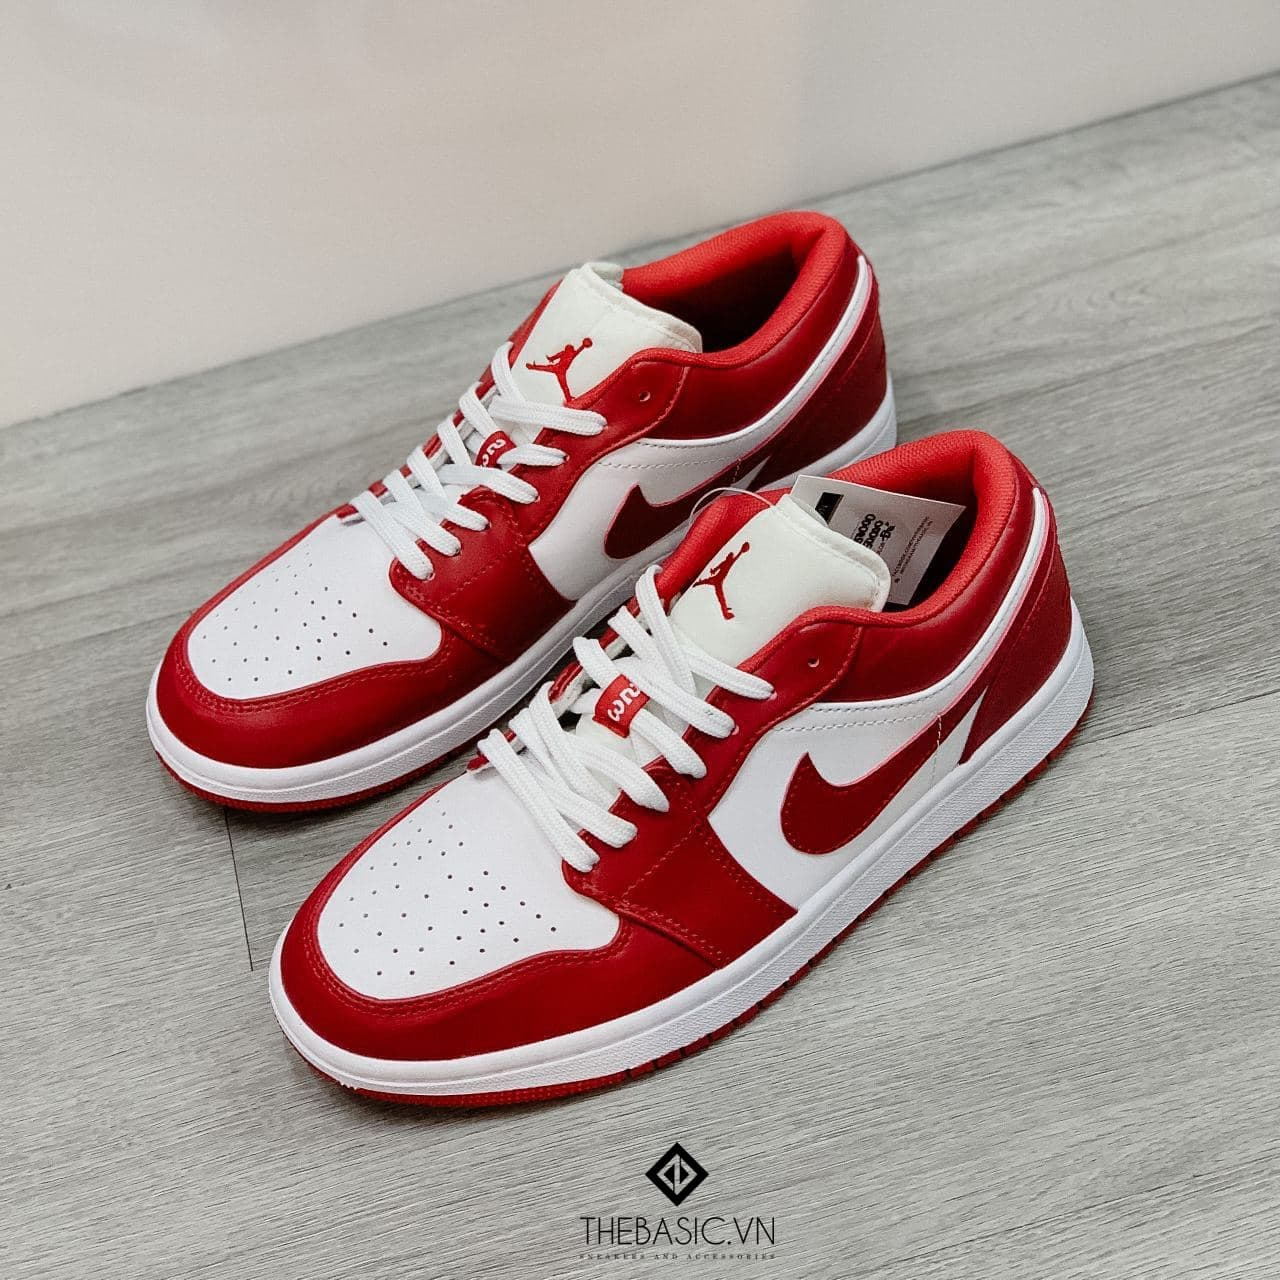 Ni - Jordan Gym Red Low